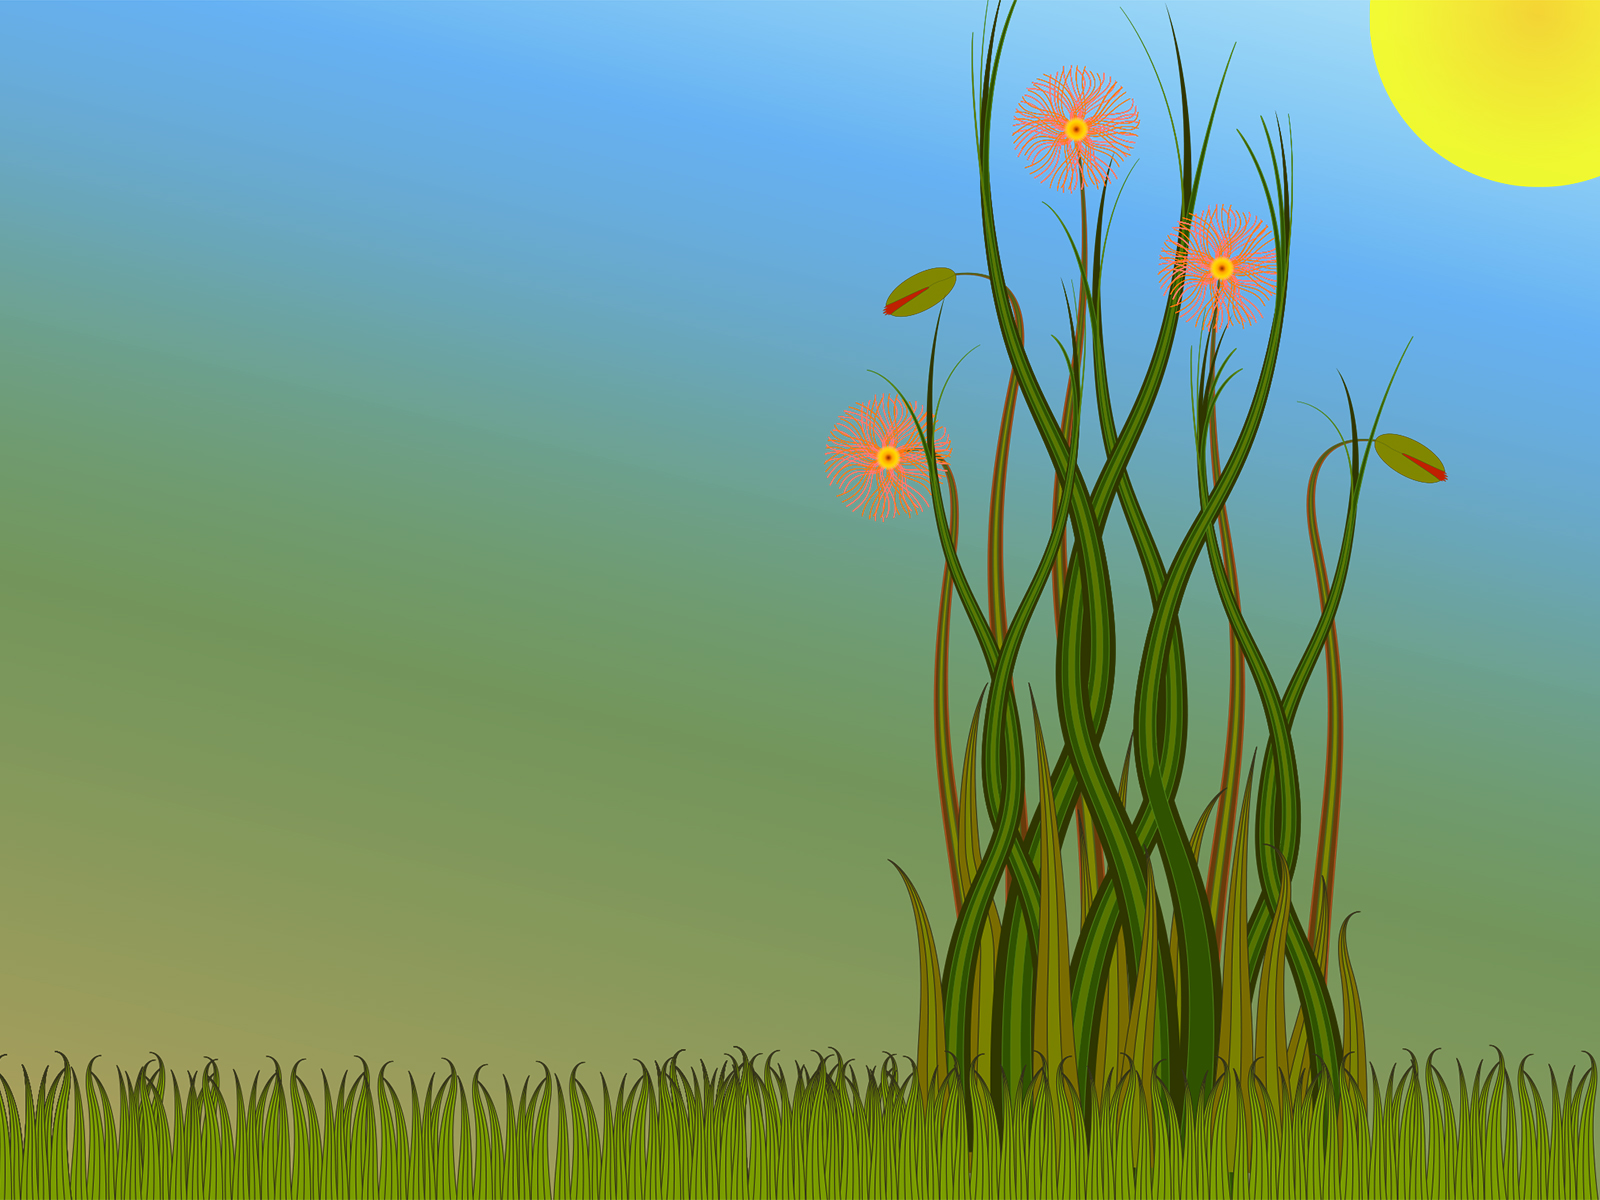 Flowers ppt backgrounds page 3 of 9 free ppt backgrounds and grass and flowers download free toneelgroepblik Image collections